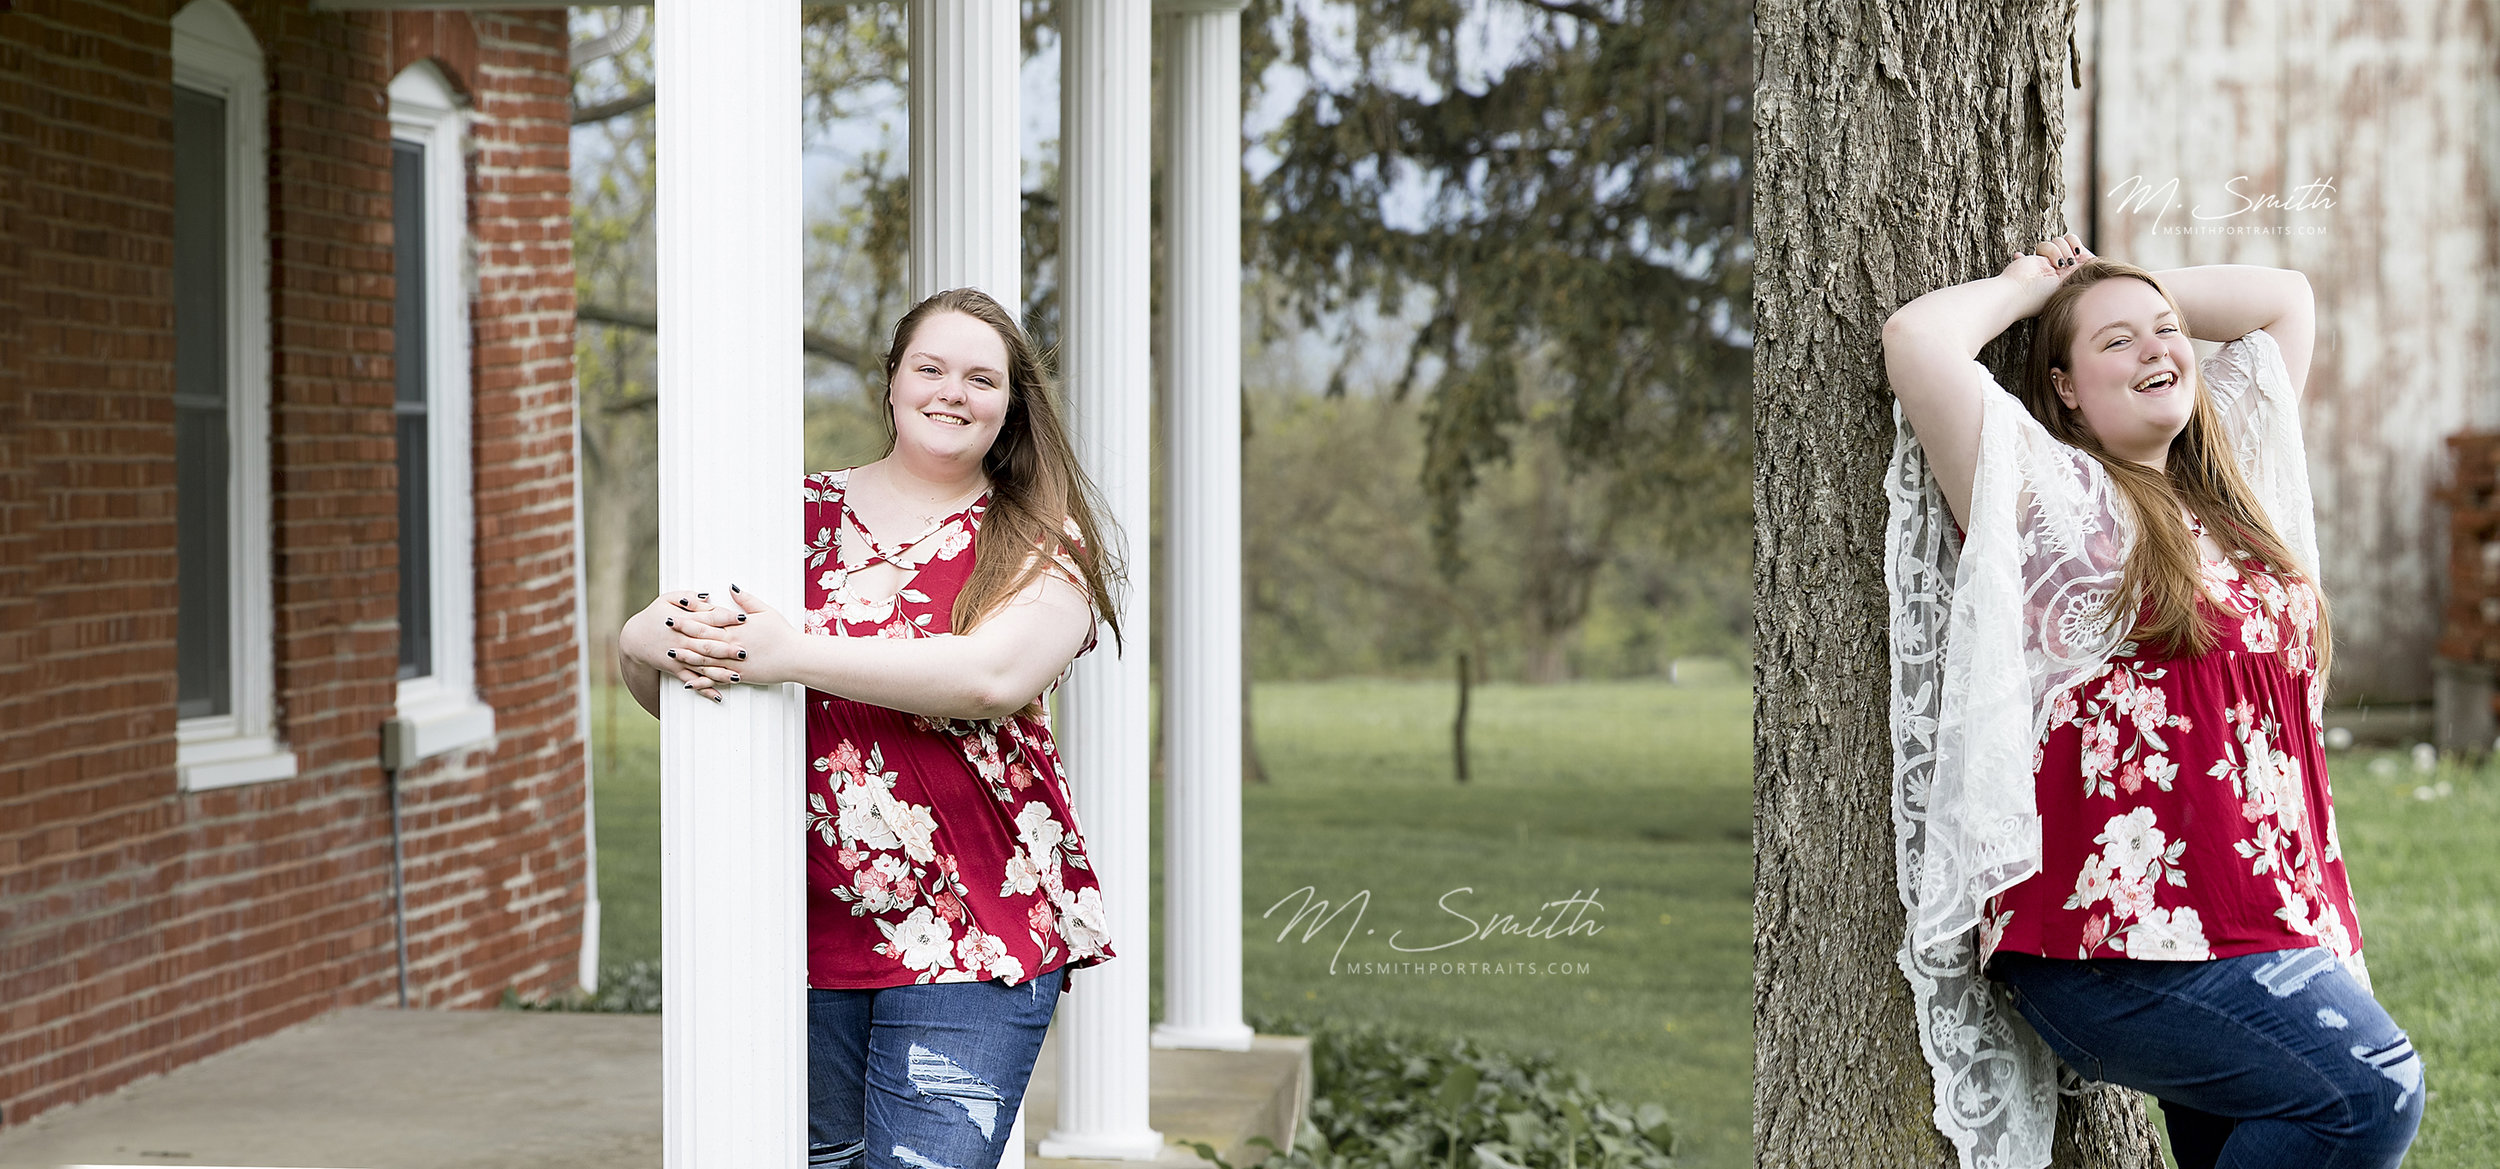 kc-senior-photography